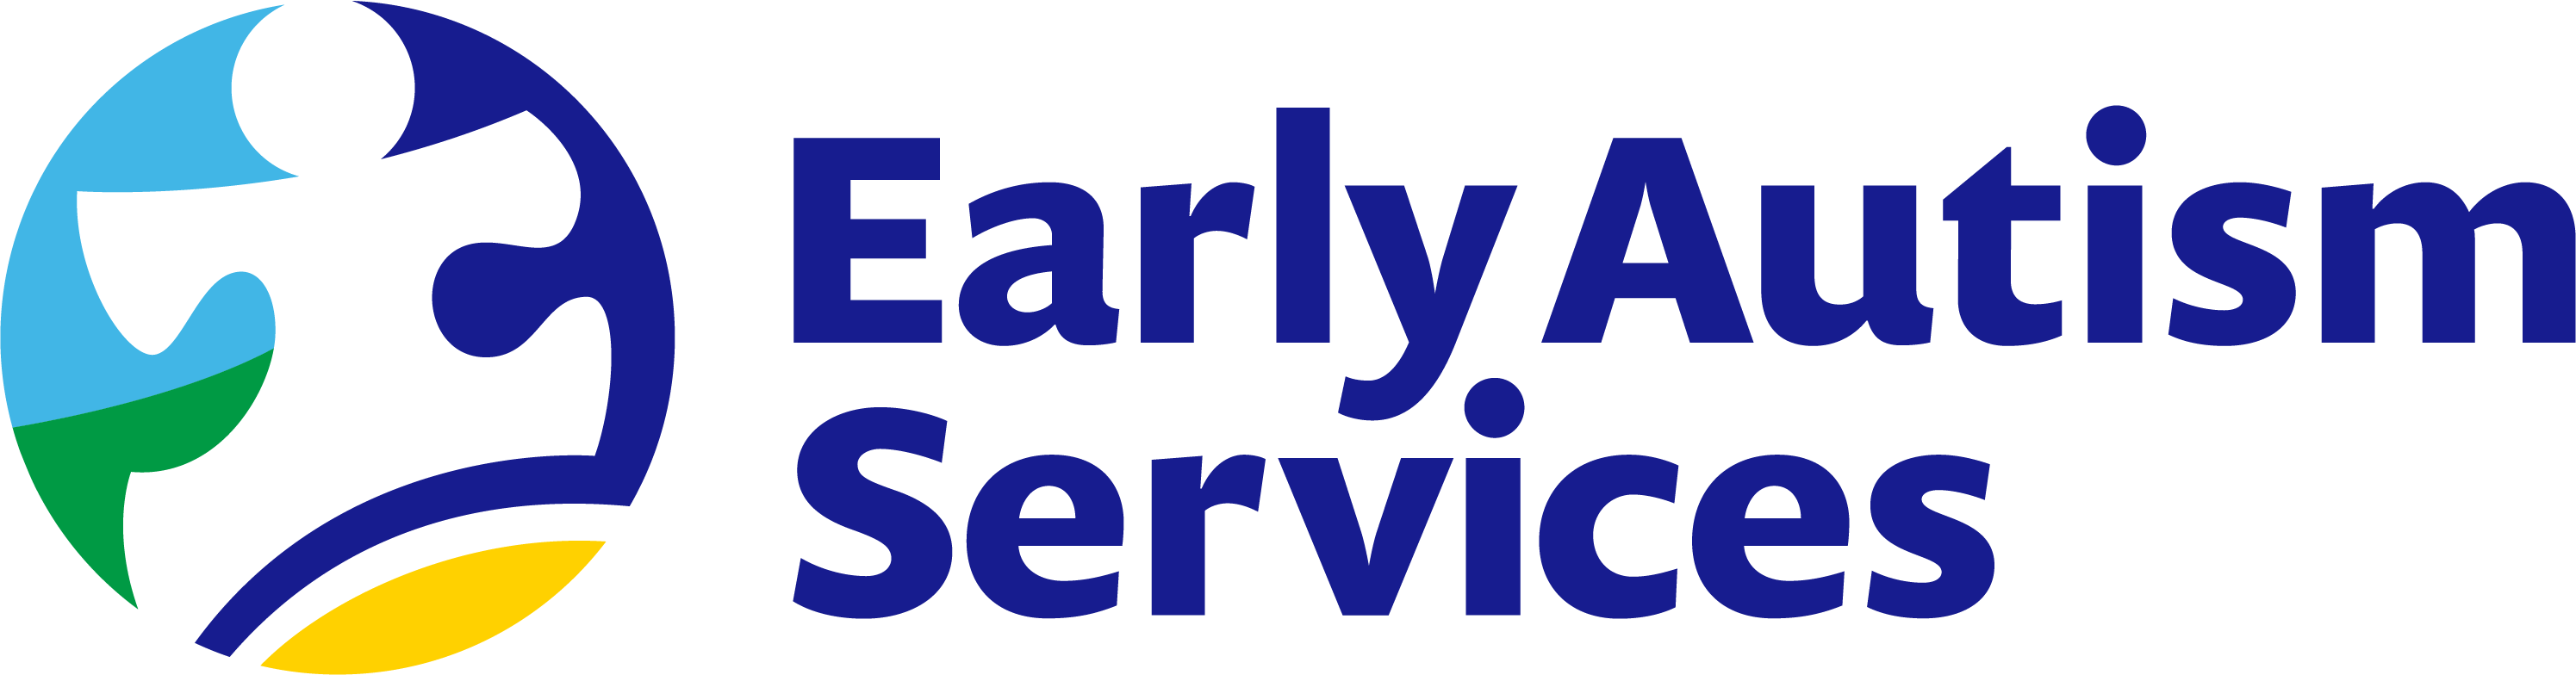 38. Early Autism Services